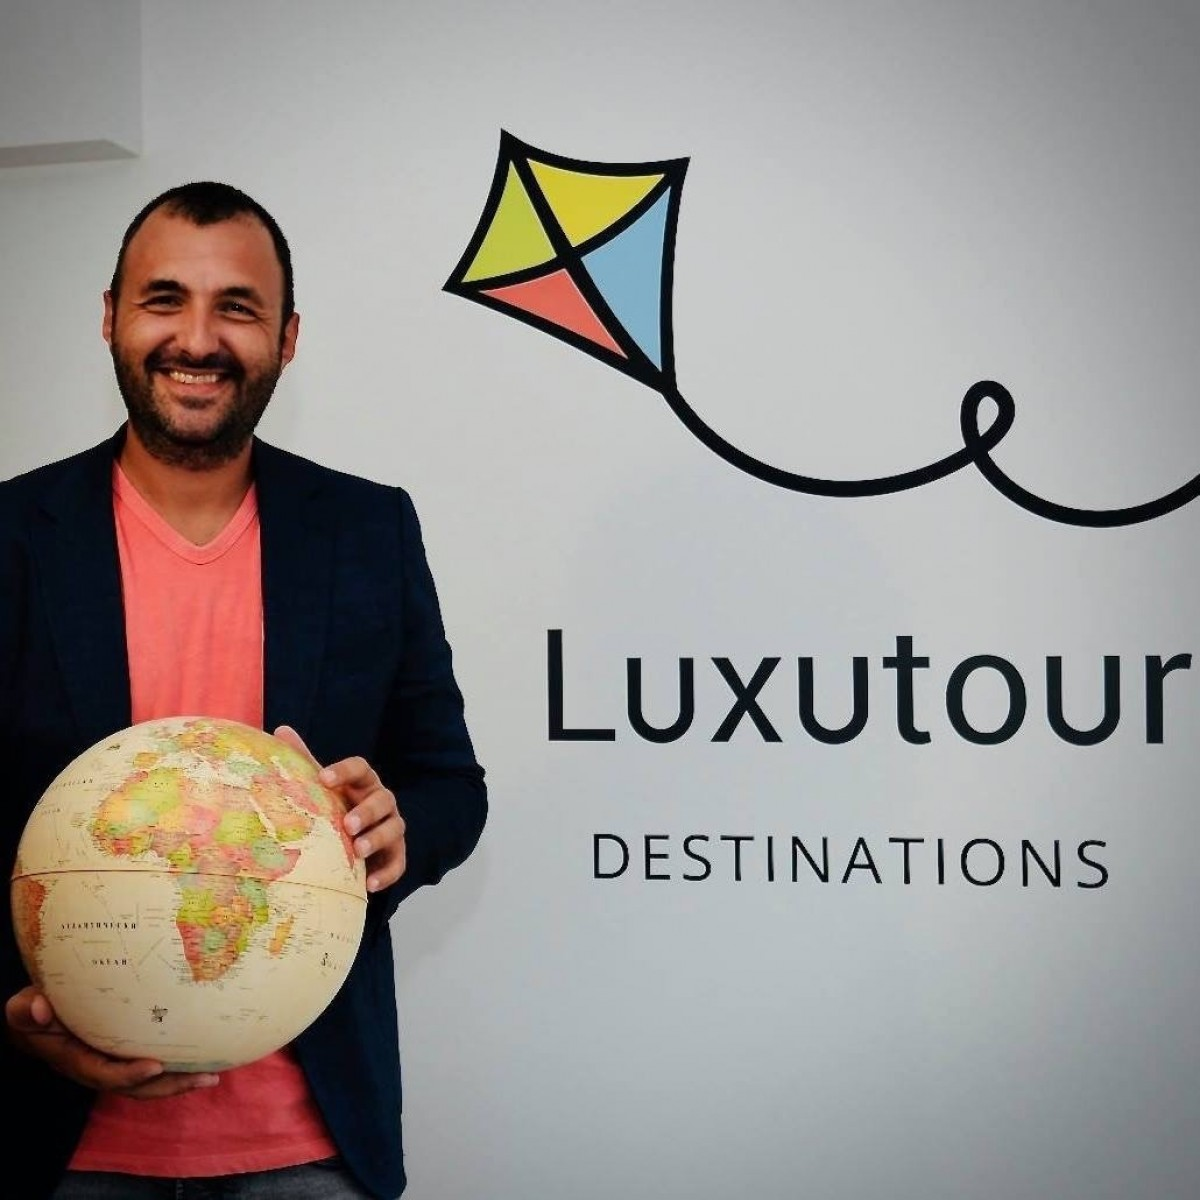 Exotic journeys with Luxutour